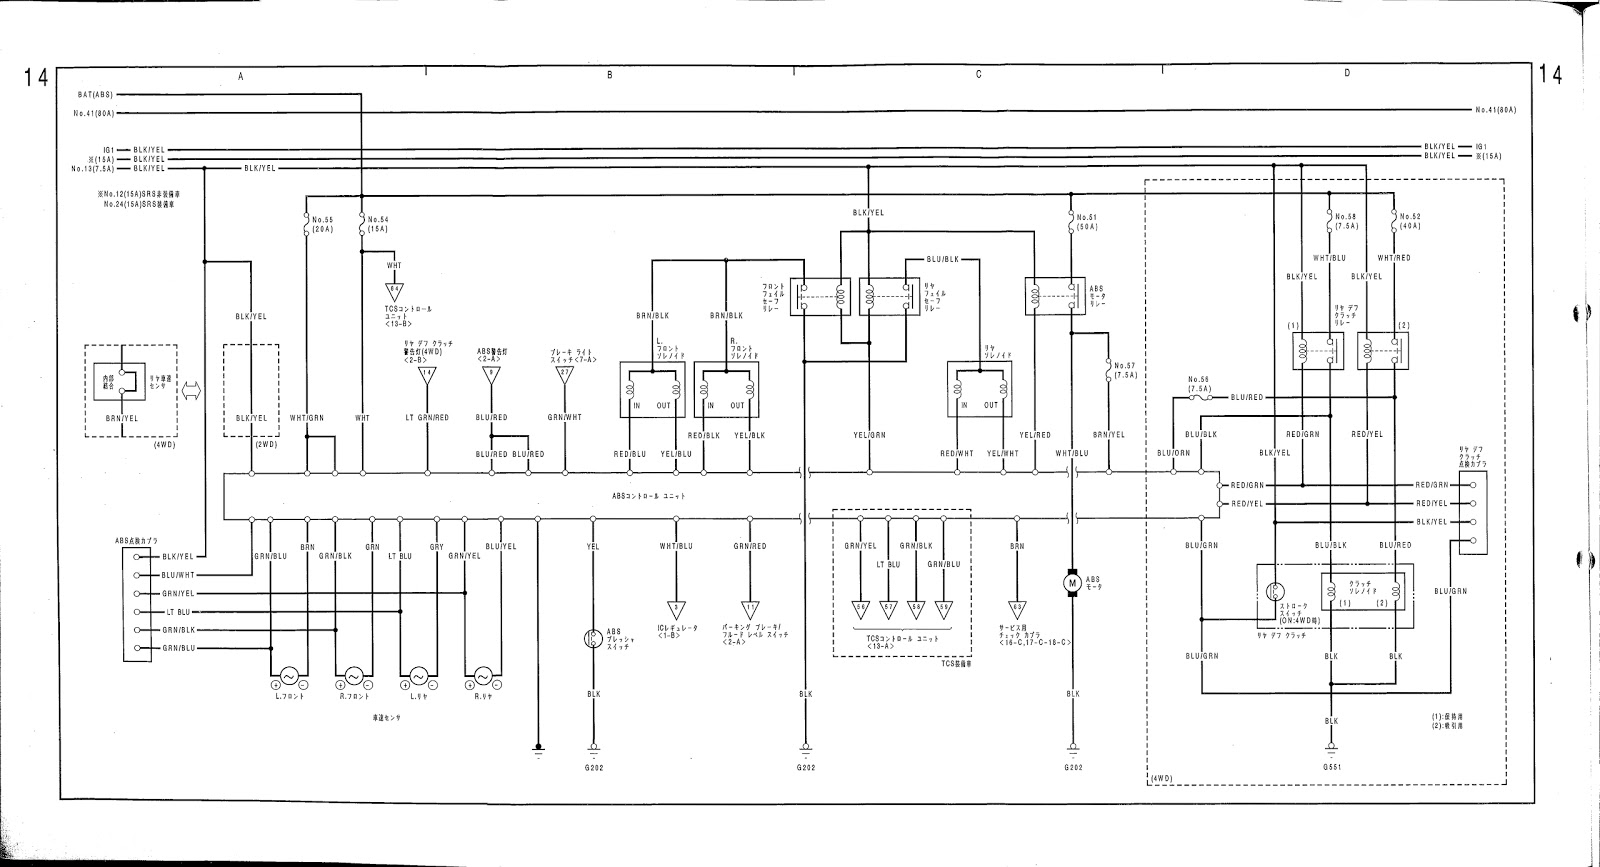 1988 Honda Civic Engine Wiring Diagram